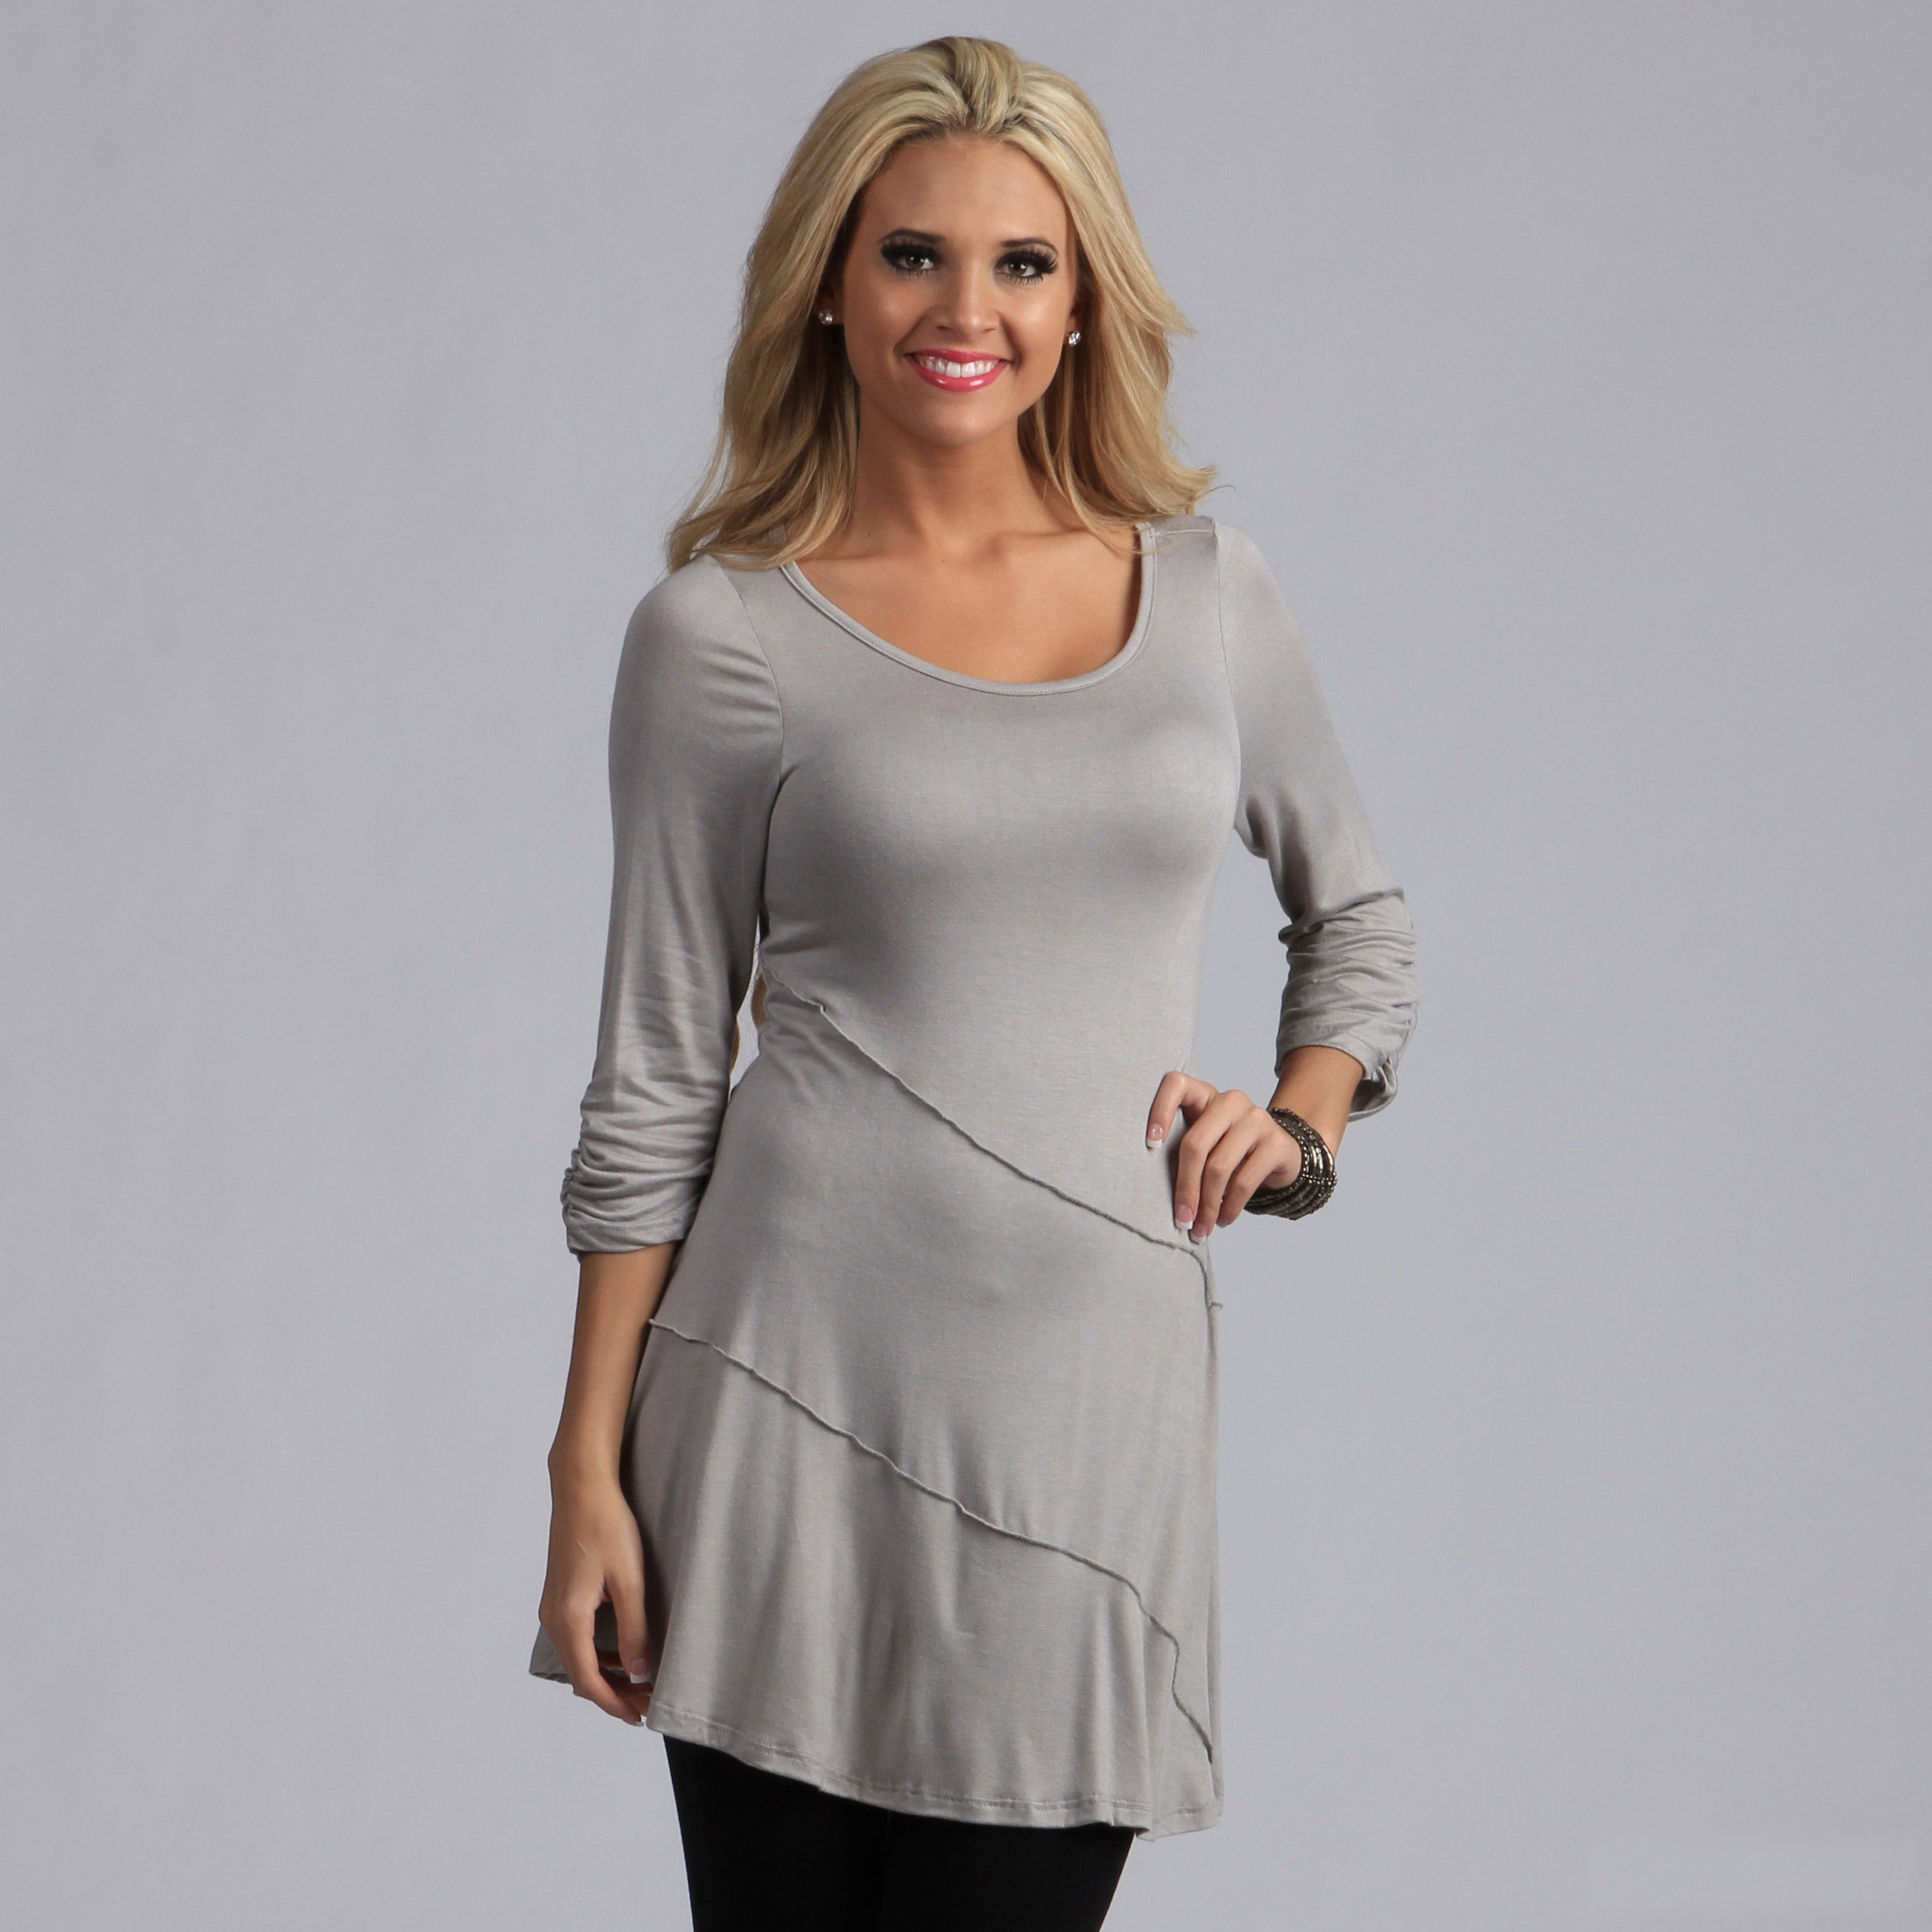 ad875970eea Shop 24/7 Comfort Apparel Women's Elbow Sleeve Tunic Top - On Sale - Free  Shipping On Orders Over $45 - Overstock - 7753190